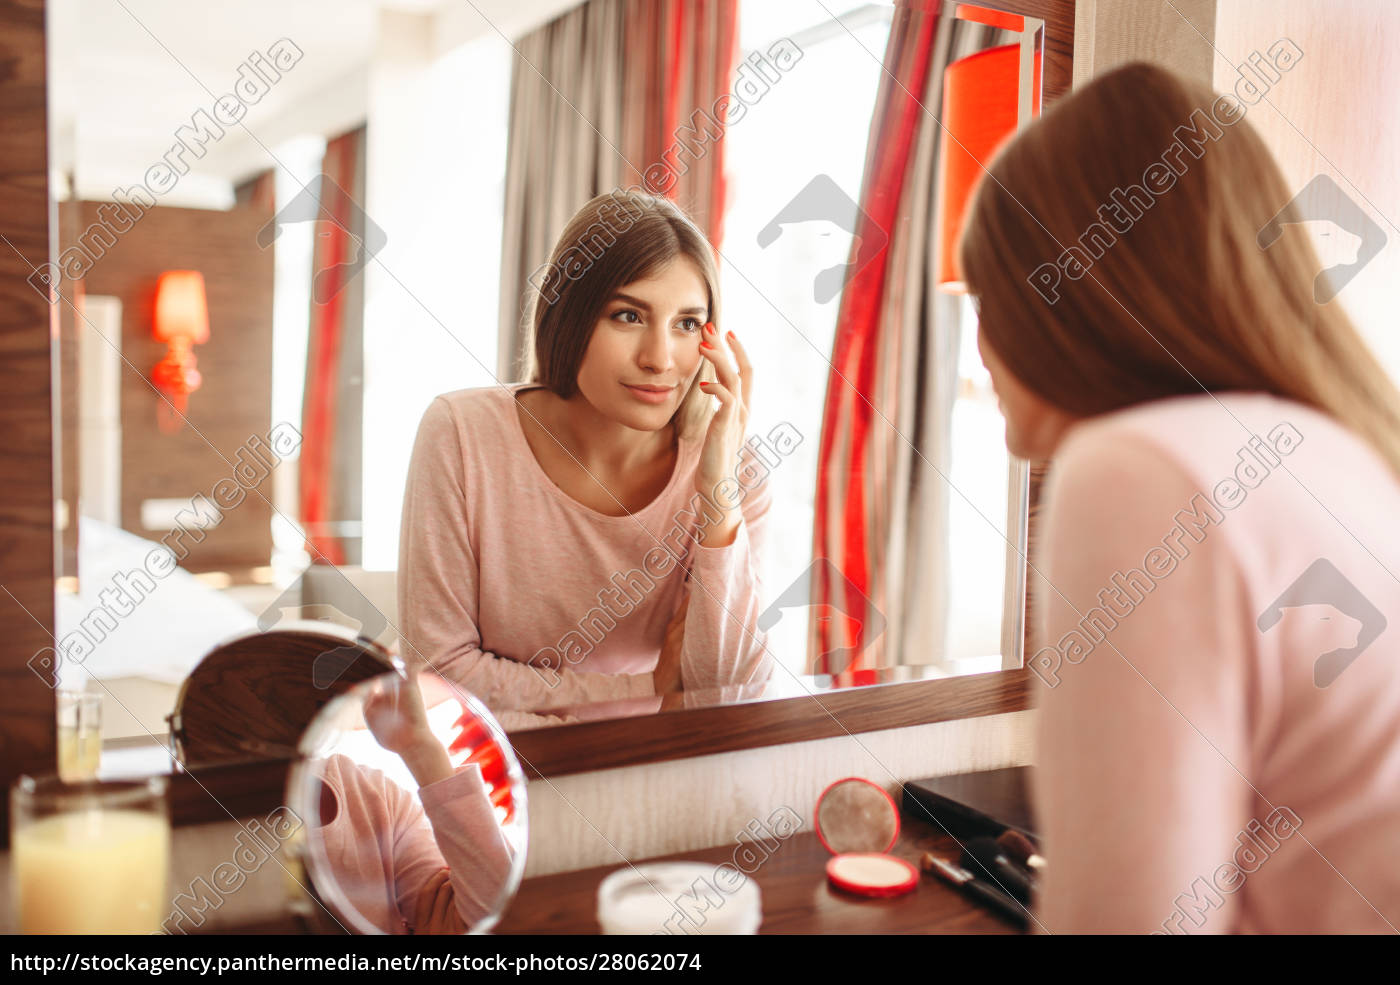 young, woman, in, pajama, in, front - 28062074